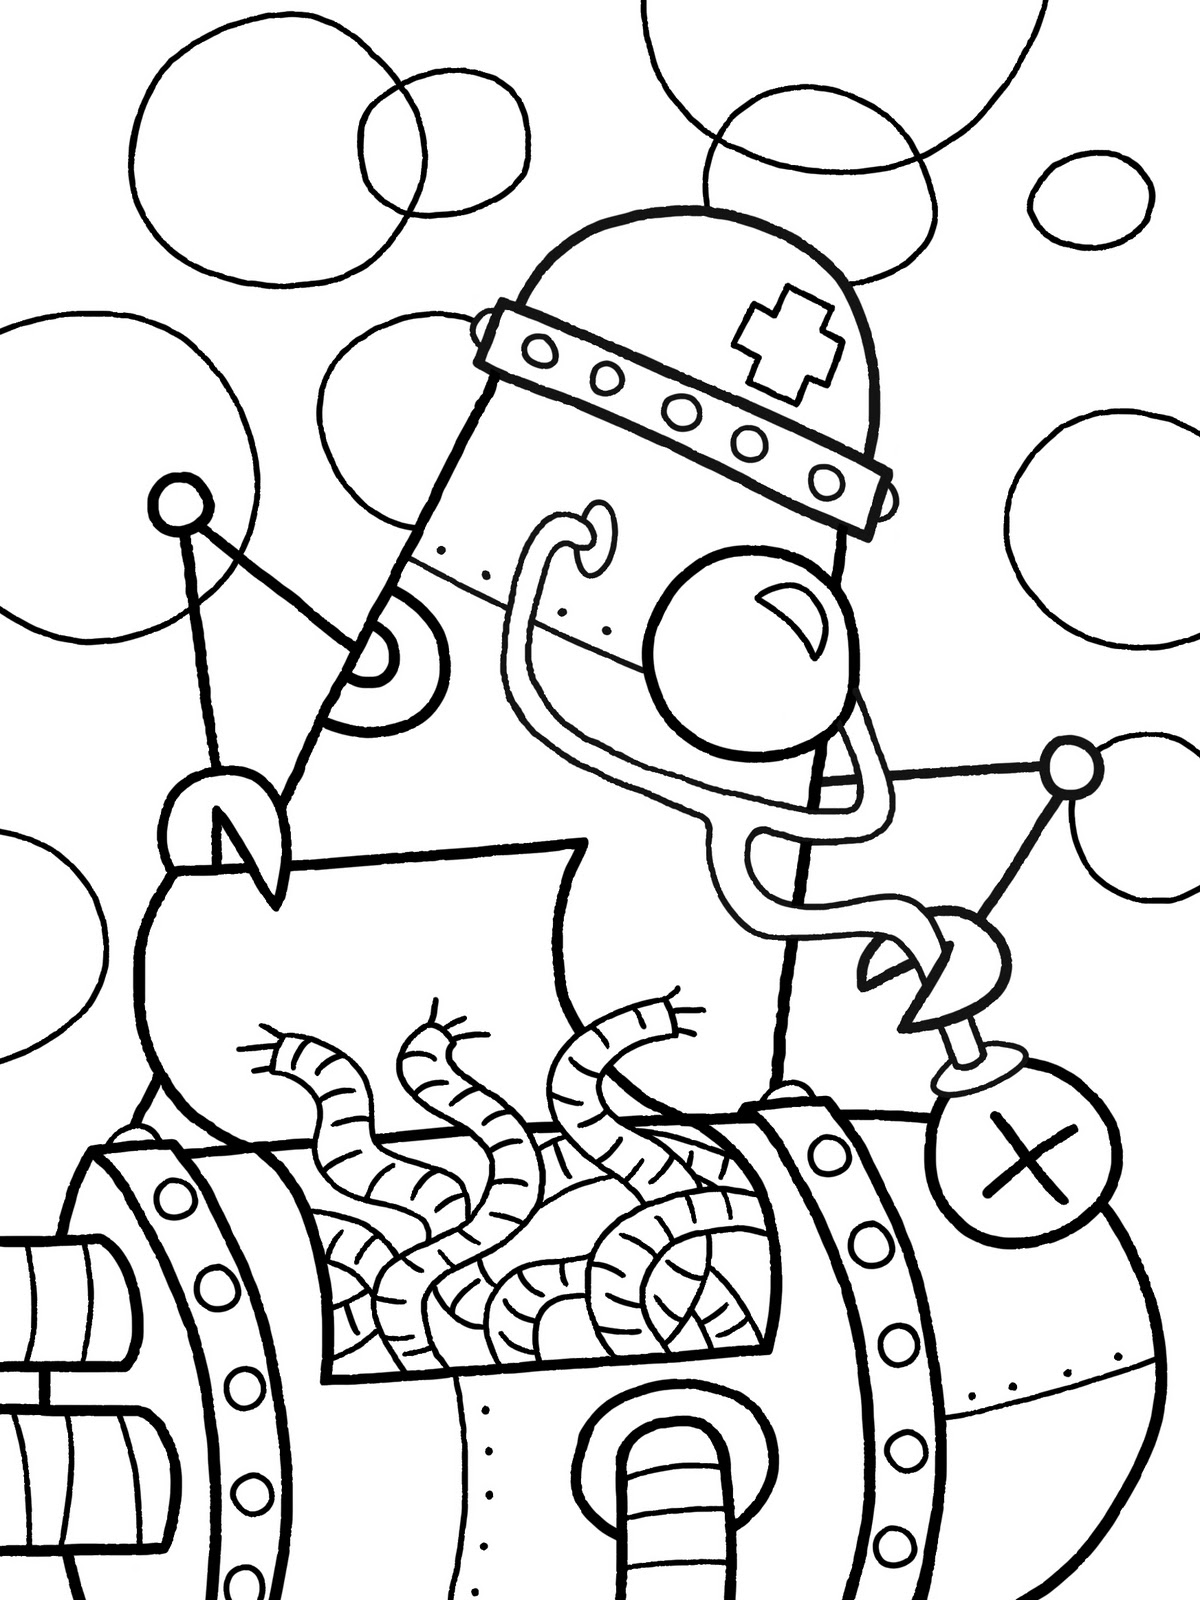 coloring pages 28 october attack - photo#5